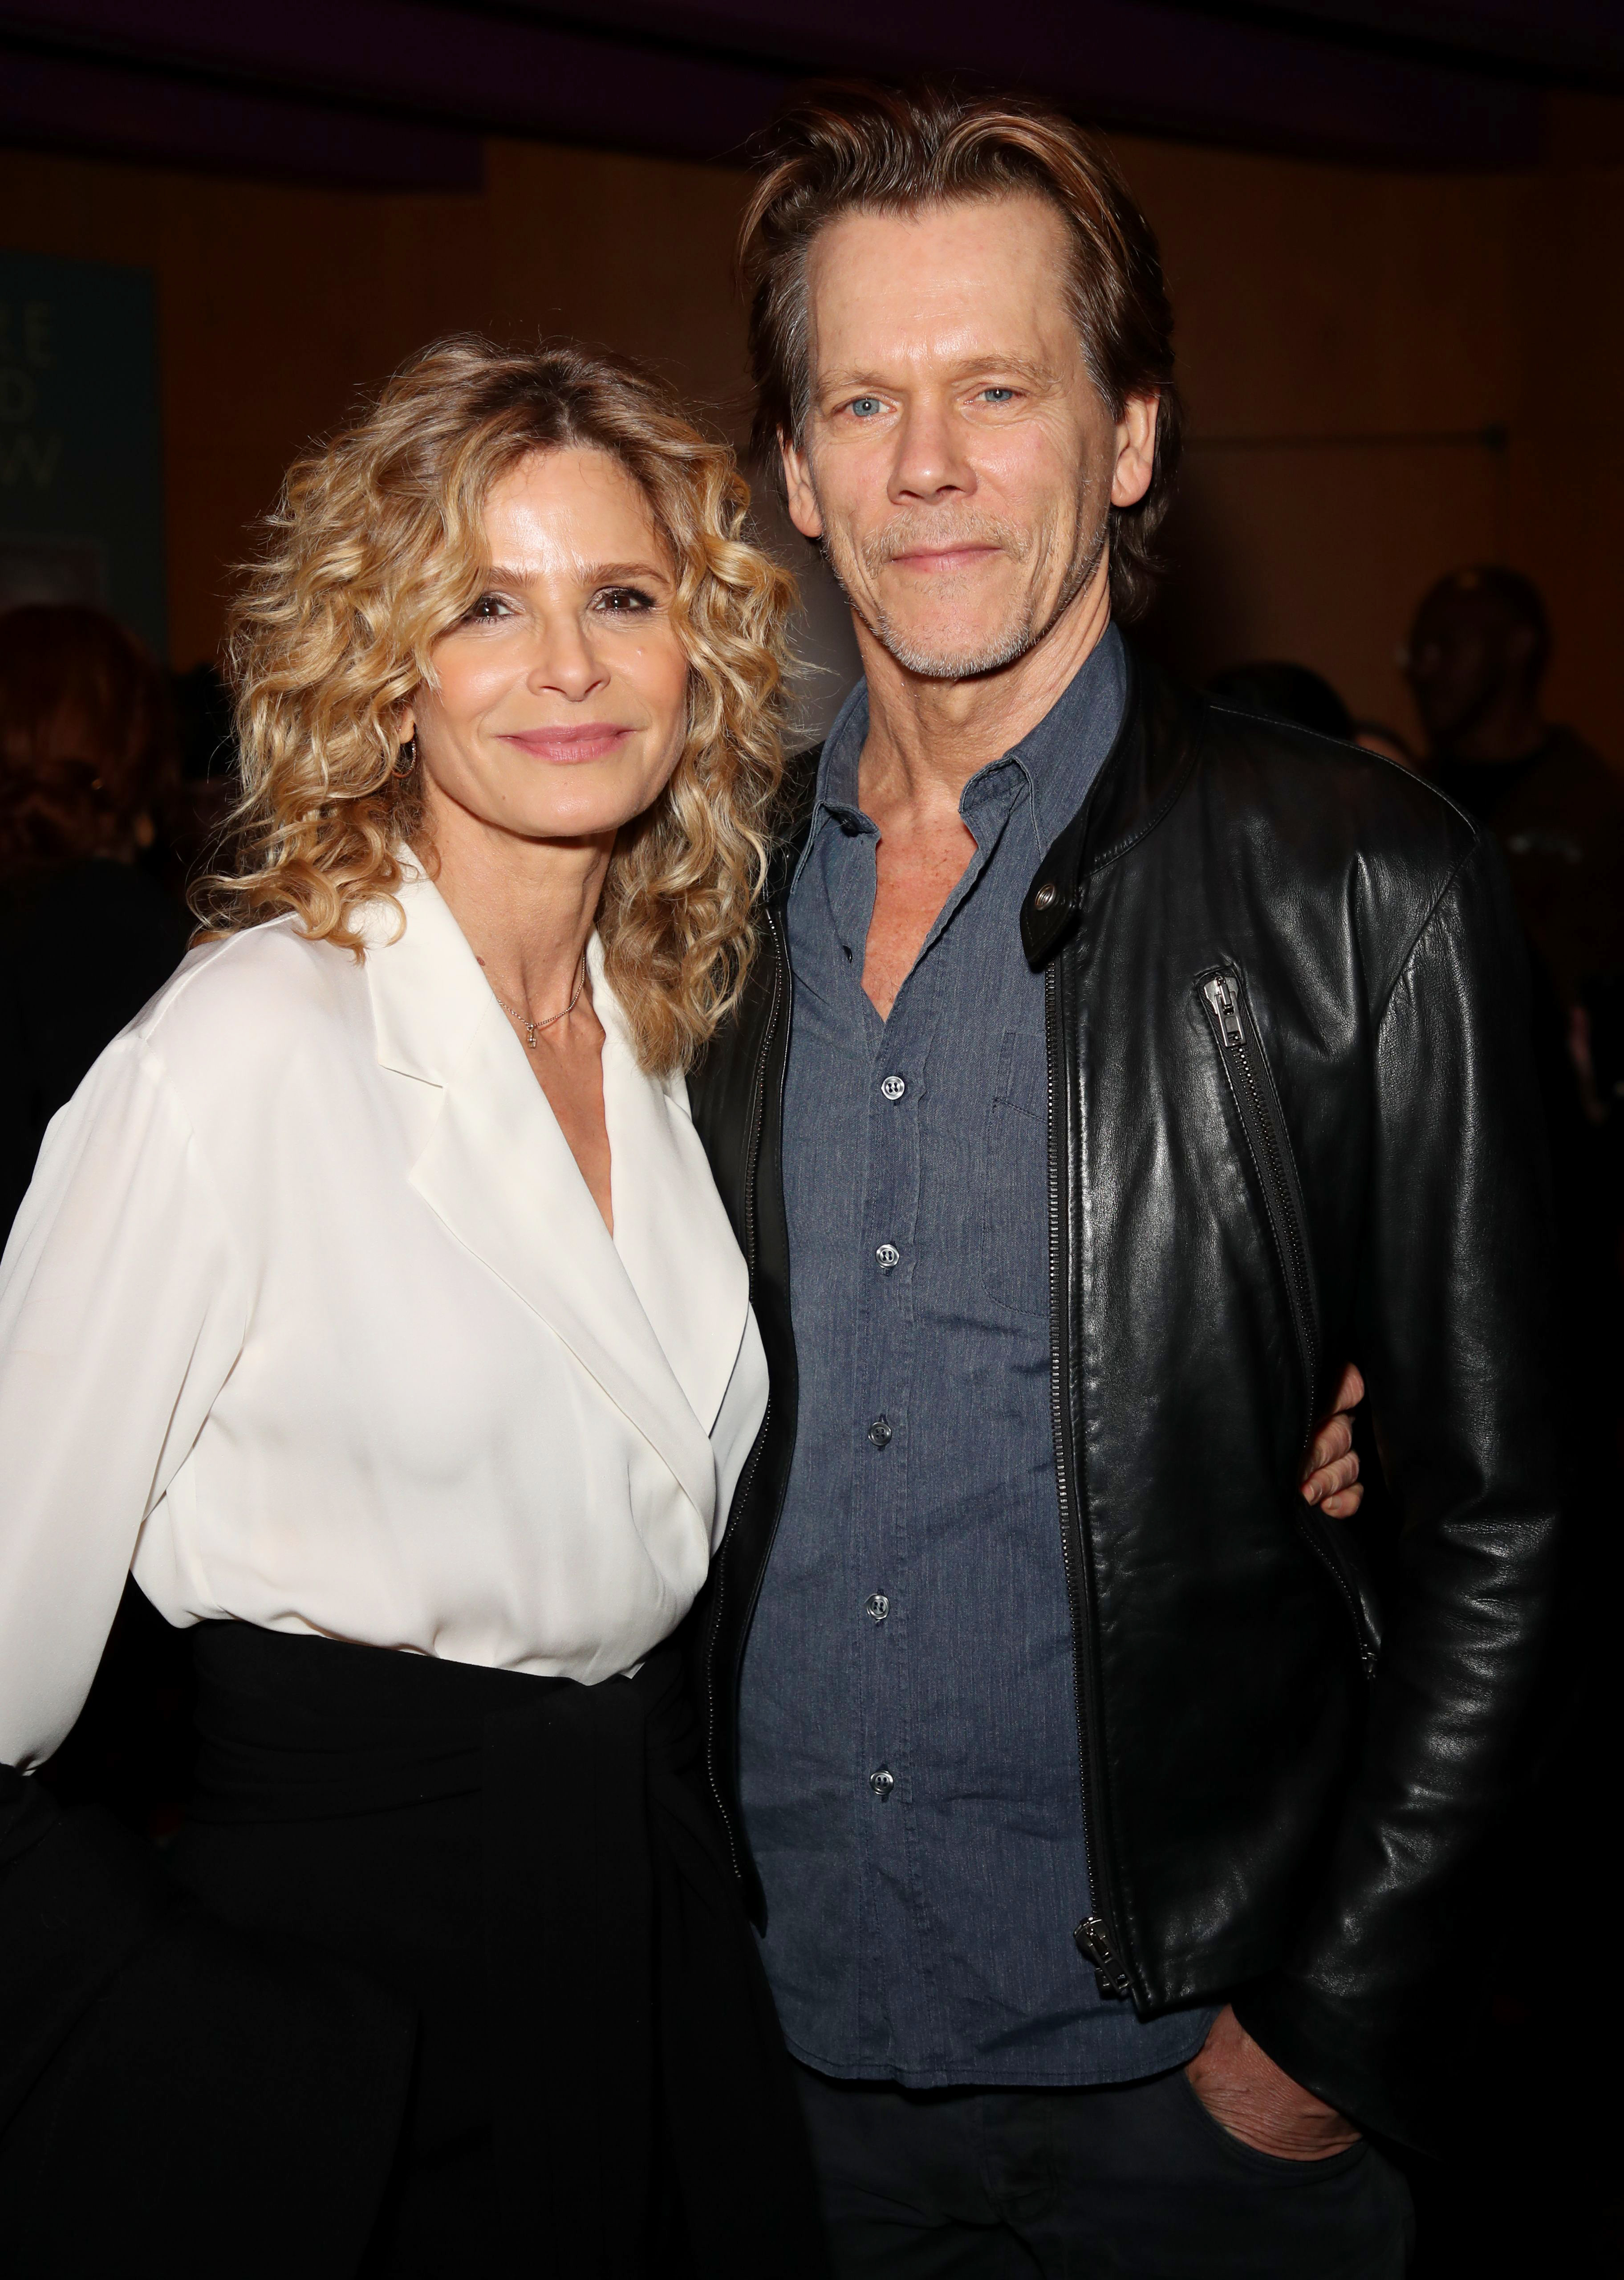 """Kyra Sedgwick and Kevin Bacon attend the """"Here and Now"""" TV show premiere in Los Angeles on Feb. 5, 2018."""